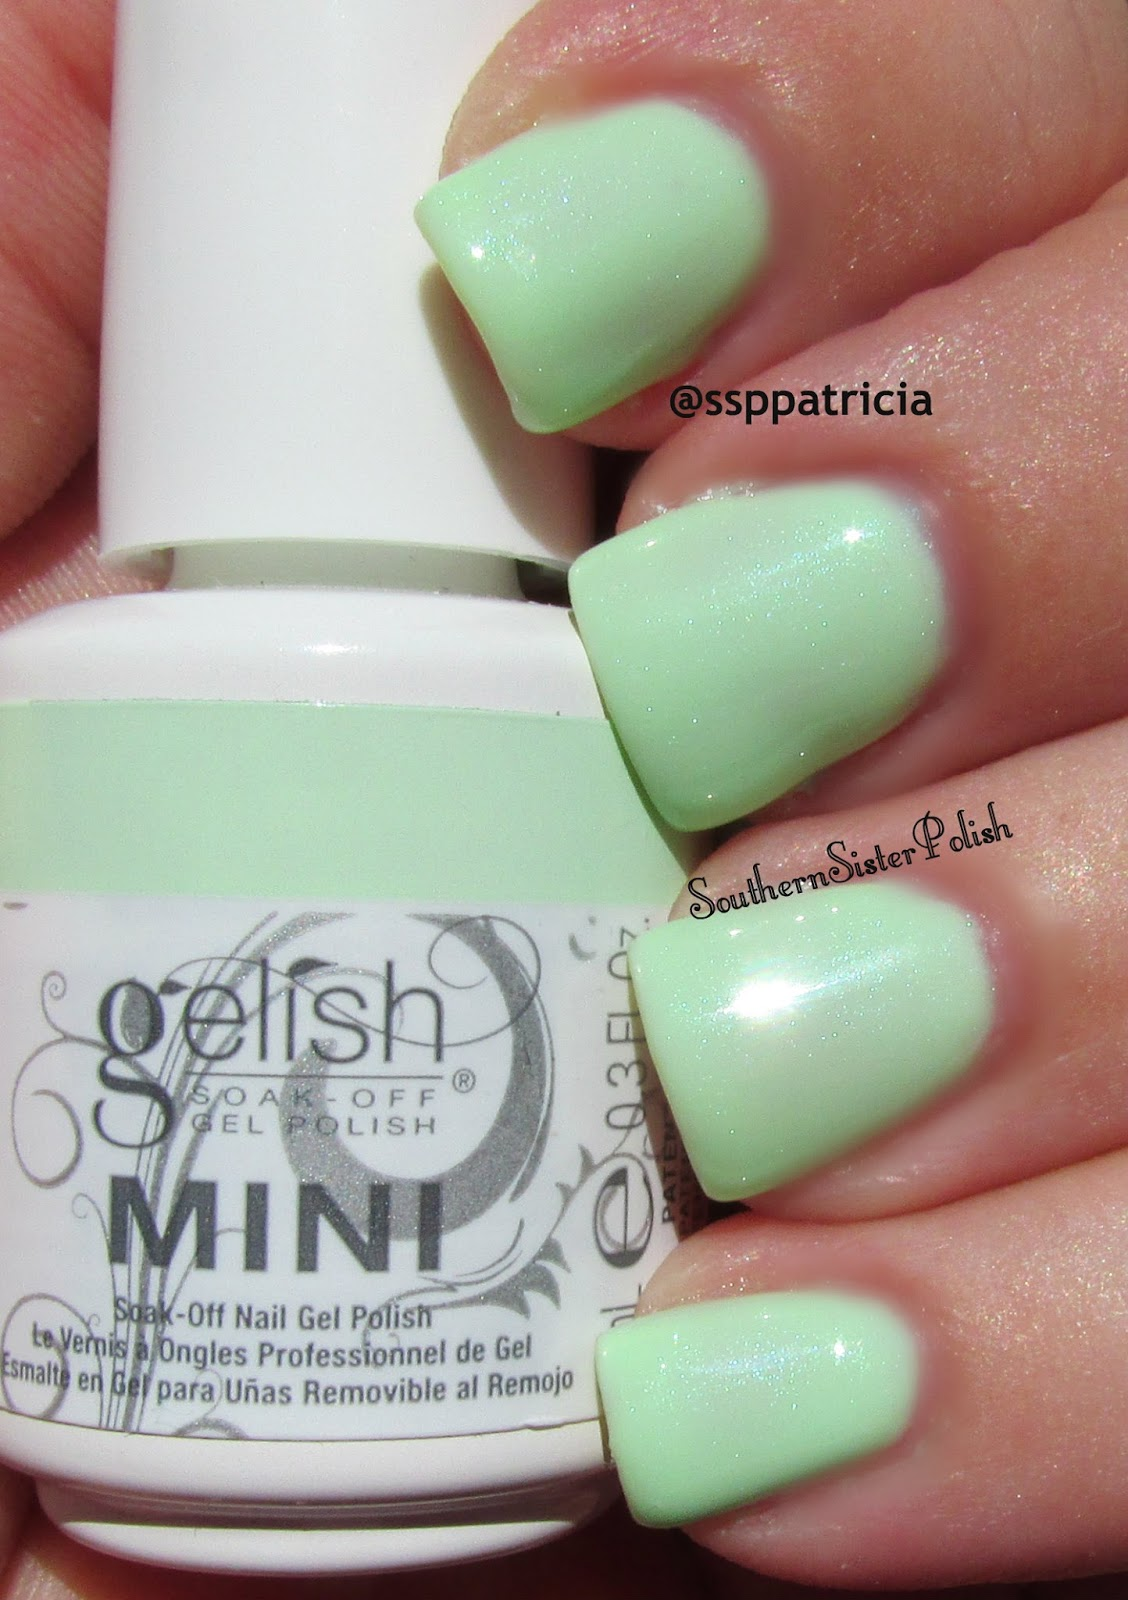 Southern Sister Polish: Hello Pretty Collection from Gelish!